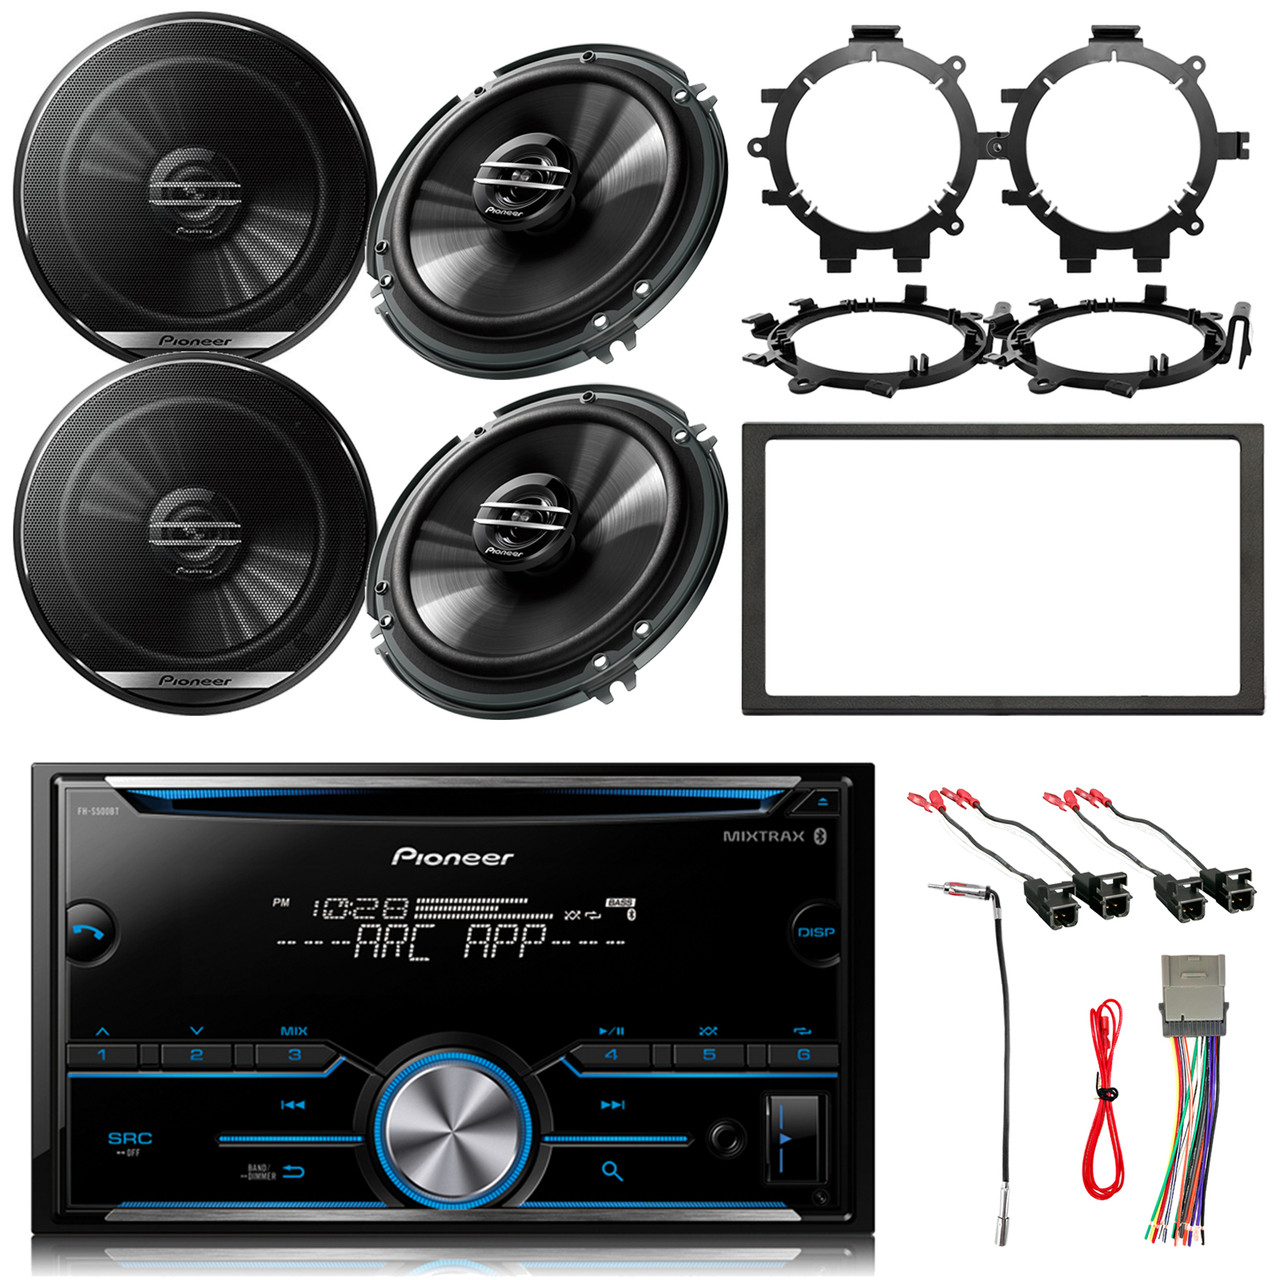 hight resolution of pioneer double din bluetooth mixtrax cd receiver 4x 6 5 speakers enrock dash kit stereo wiring harness antenna adapter 4x speaker wire harness